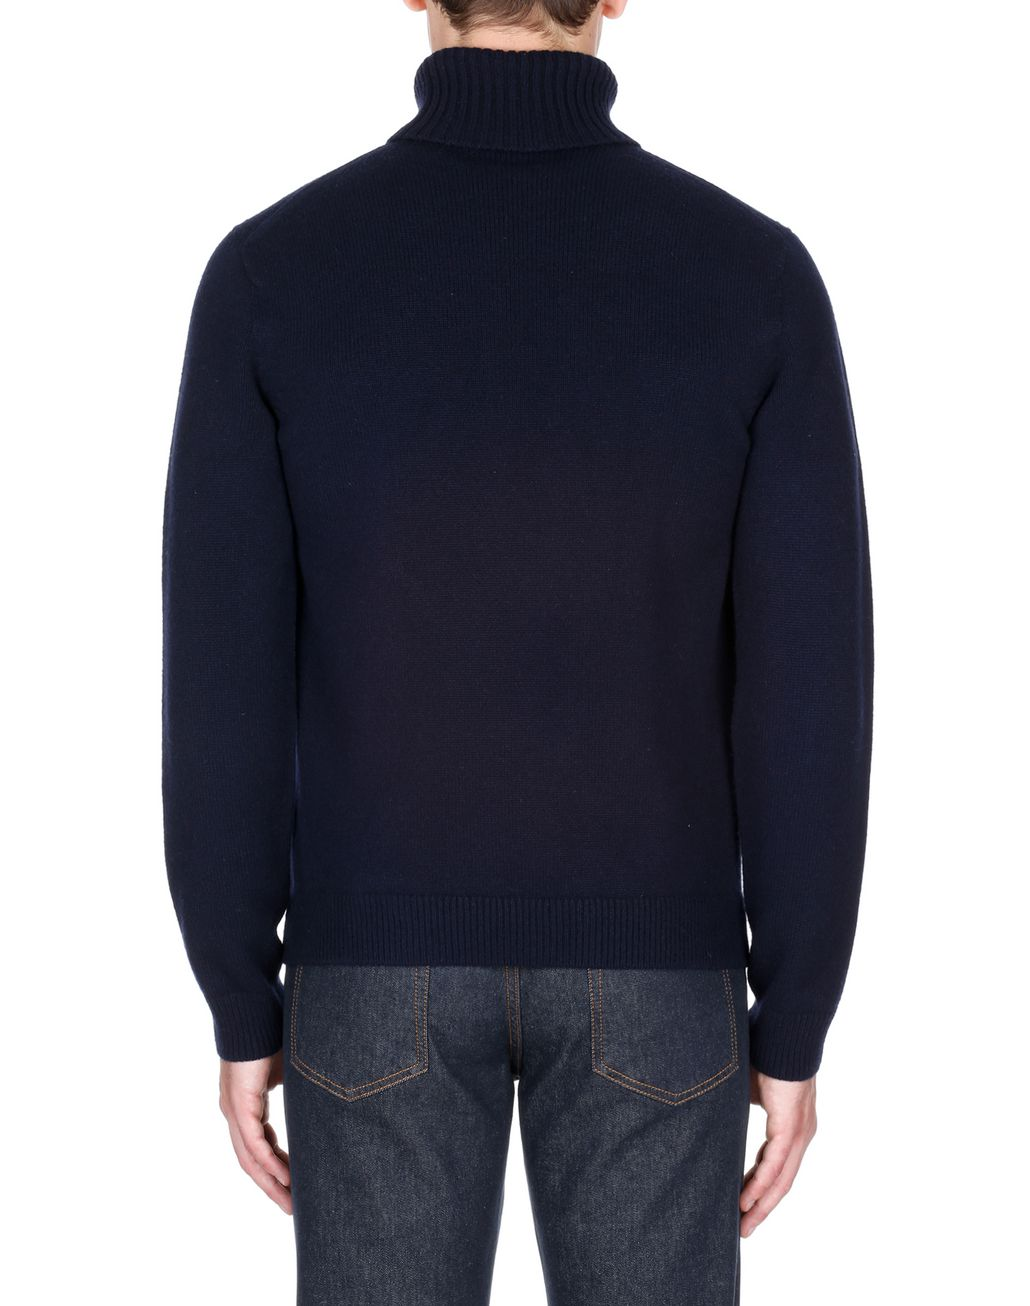 BRIONI Navy Blue Turtleneck Sweater Knitwear Man d